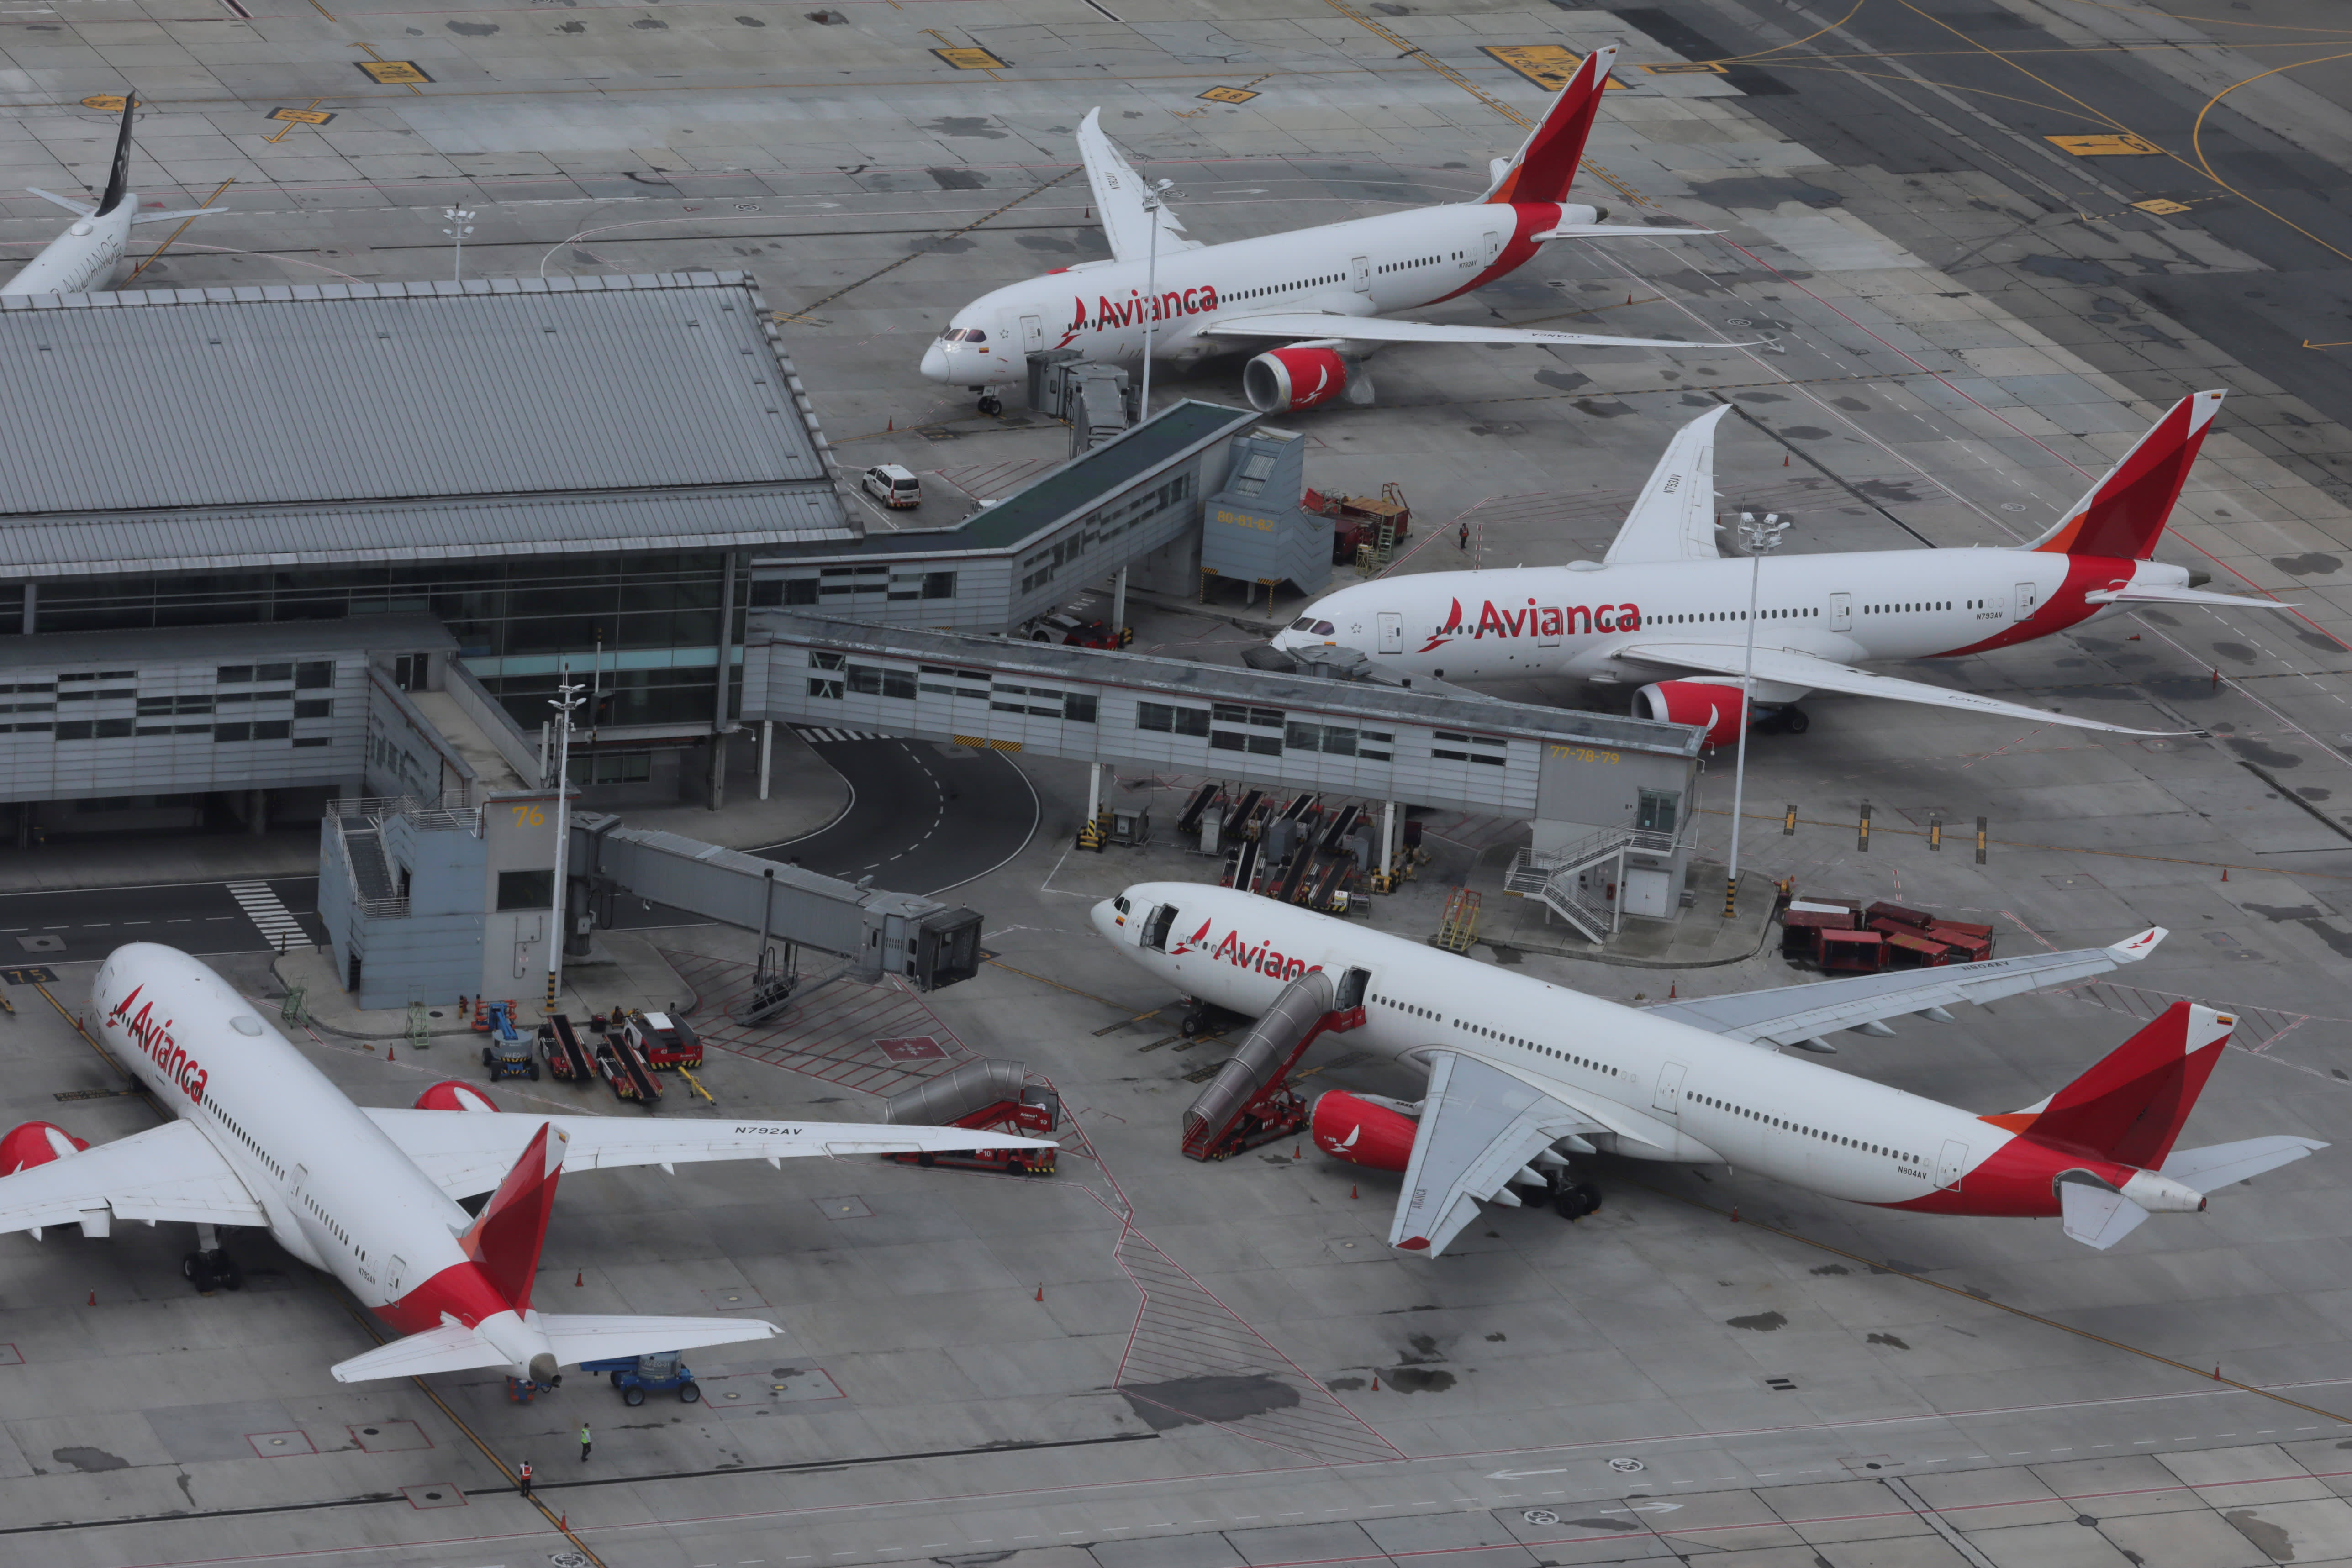 World's second-oldest airline, Avianca, driven to bankruptcy by coronavirus